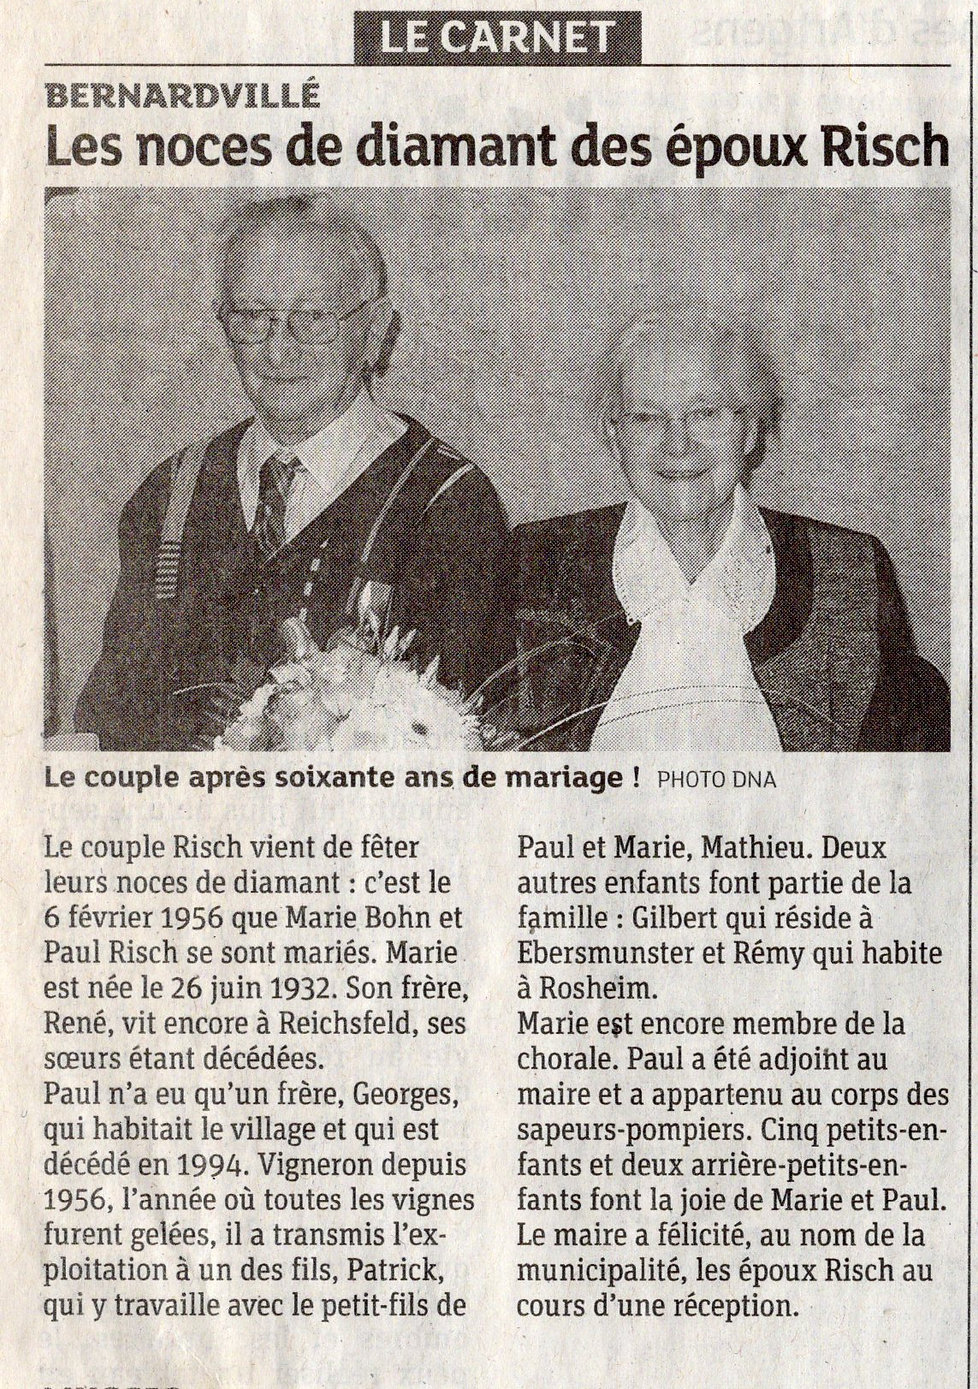 Noces de diamant Marie et Paul Risch Ber